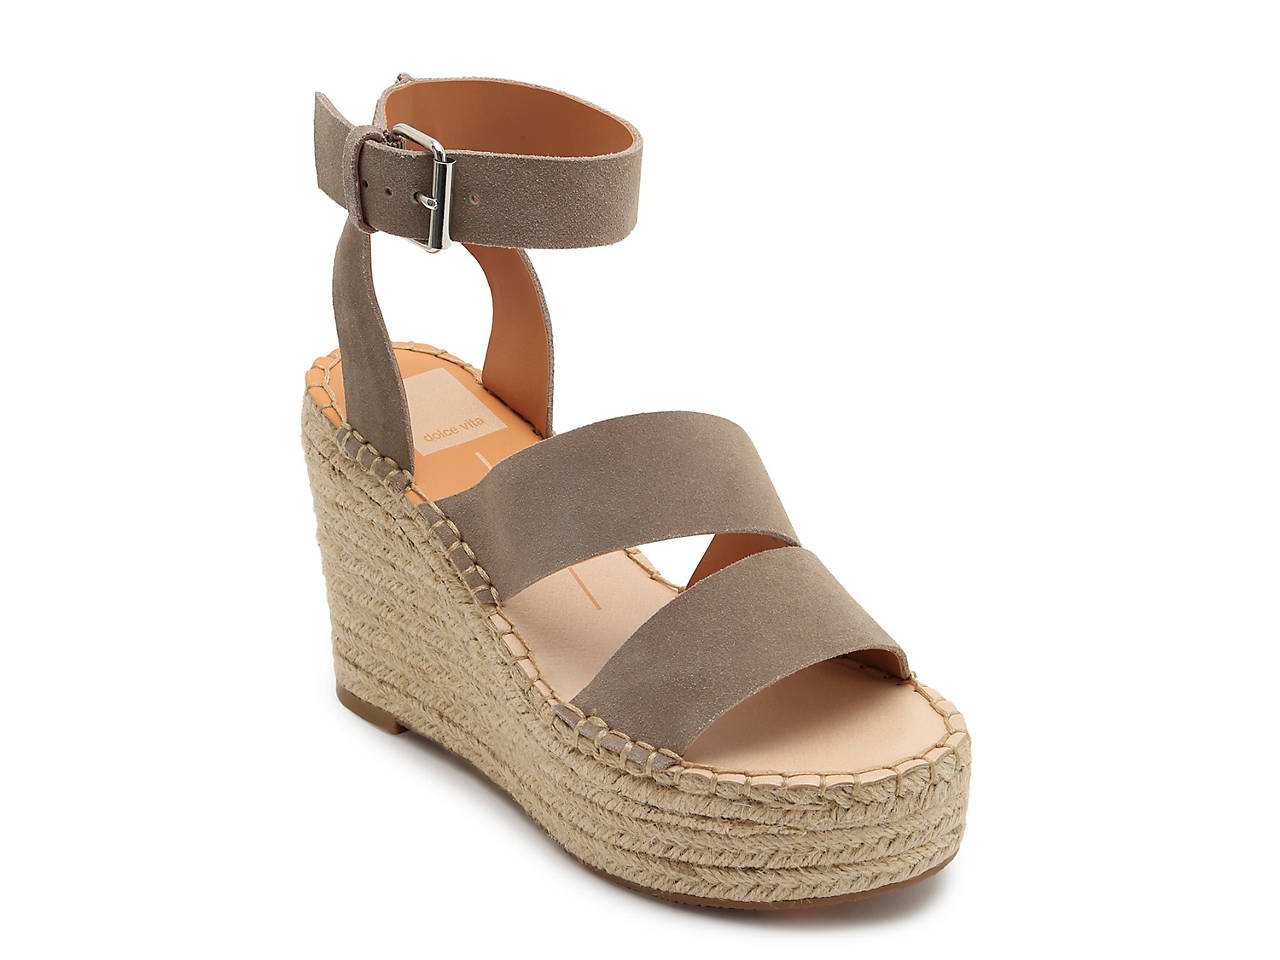 410e0e4a11a Dolce Vita Shayla Espadrille Wedge Sandal Women s Shoes